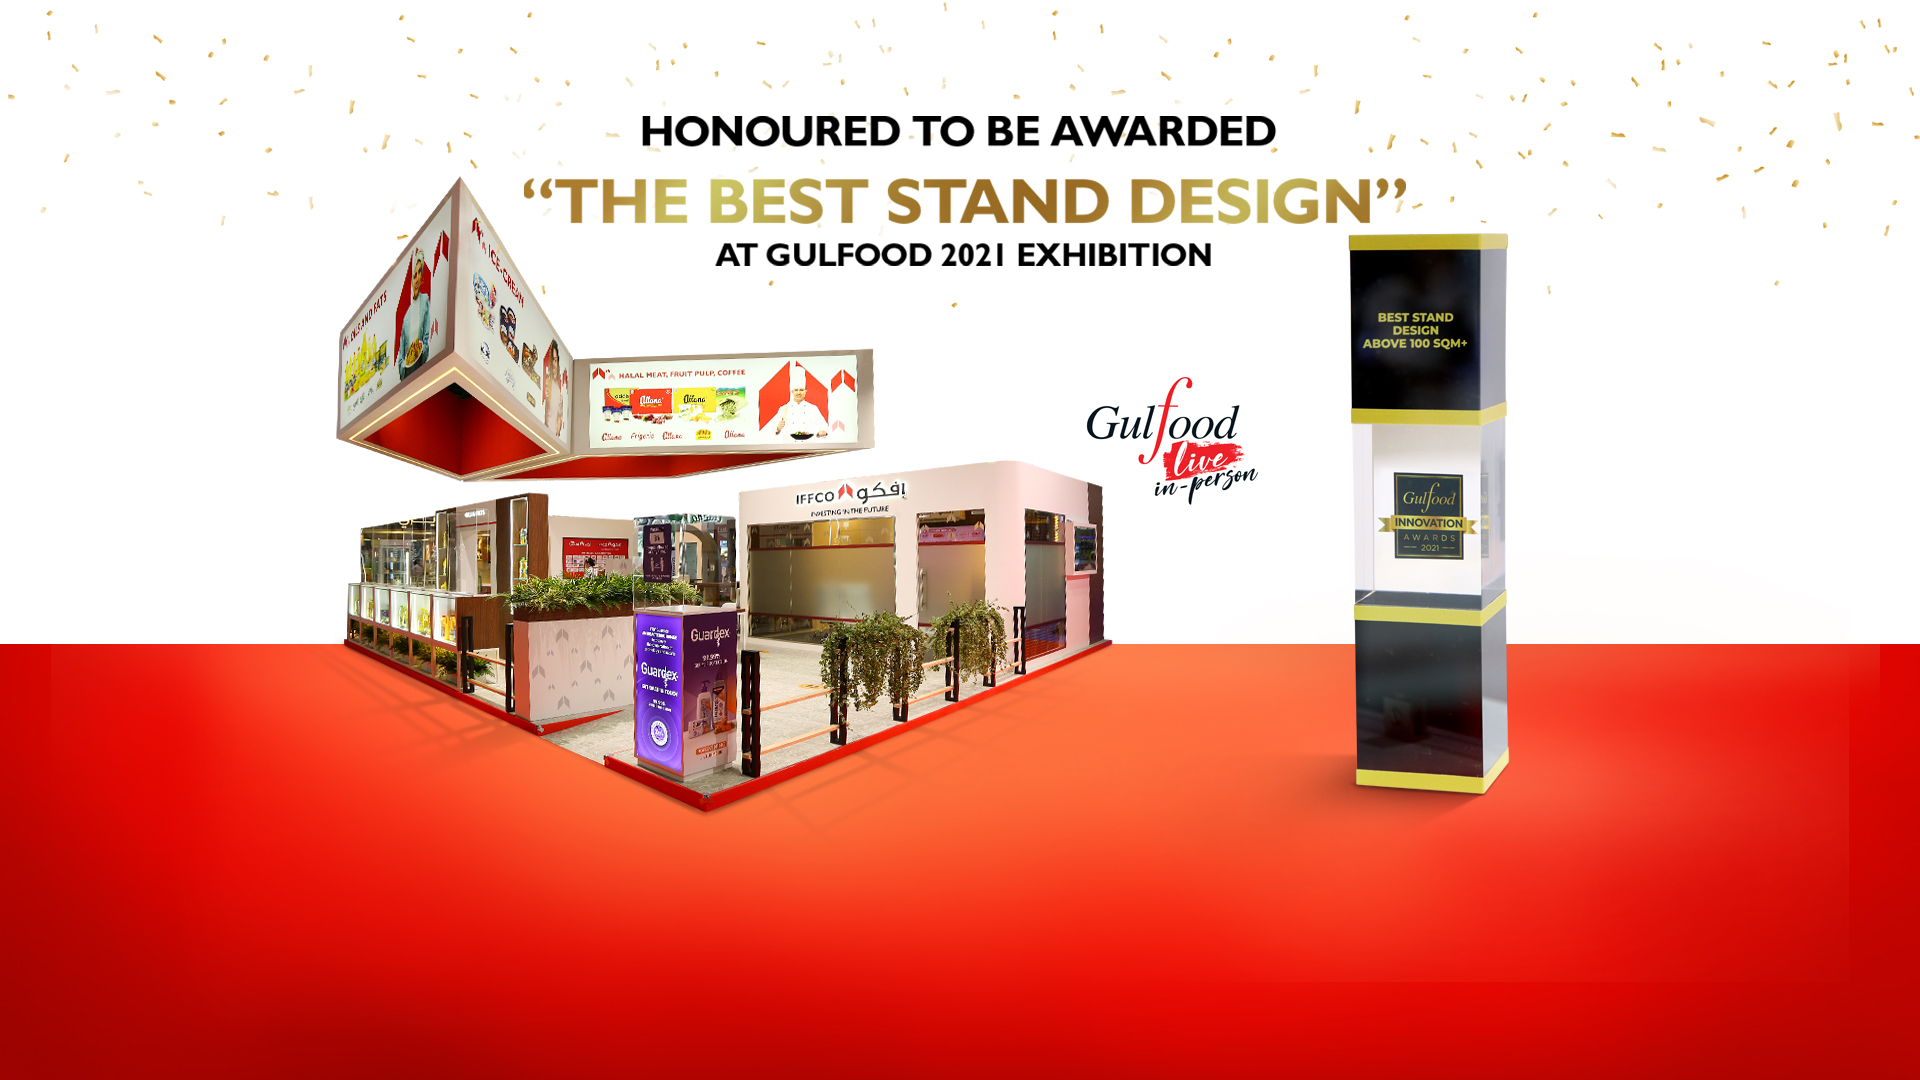 IFFCO honoured with the 'Best Stand Award' at the Gulfood 2021 Exhibition